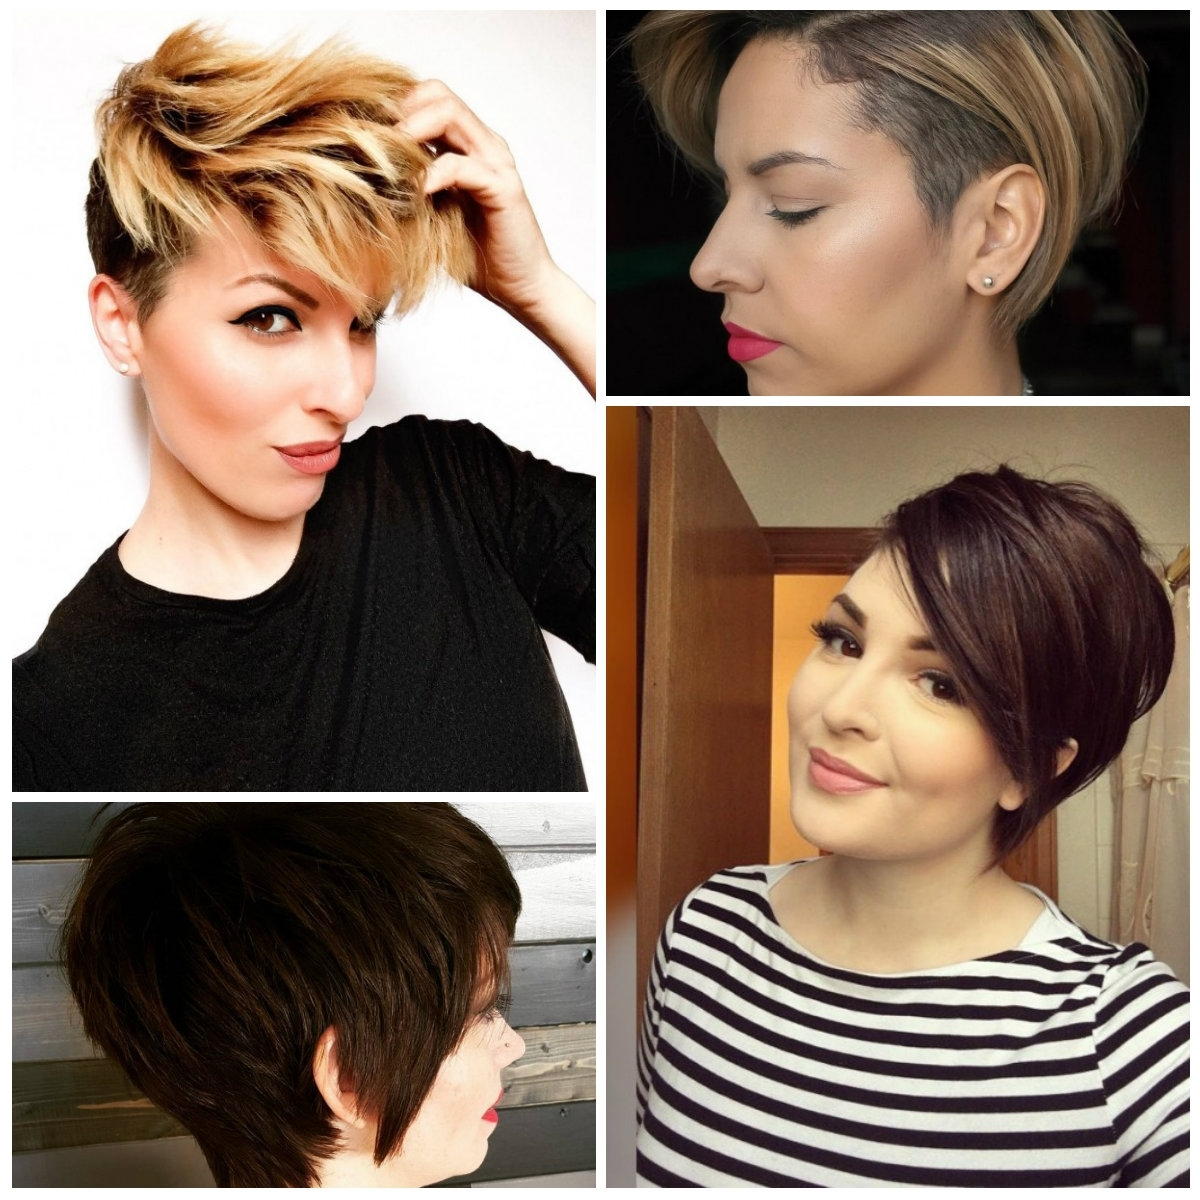 Long Pixie Haircuts For Ladies – Haircuts And Hairstyles For 2017 With Regard To Most Popular Long Pixie Hairstyles For Women (View 8 of 15)